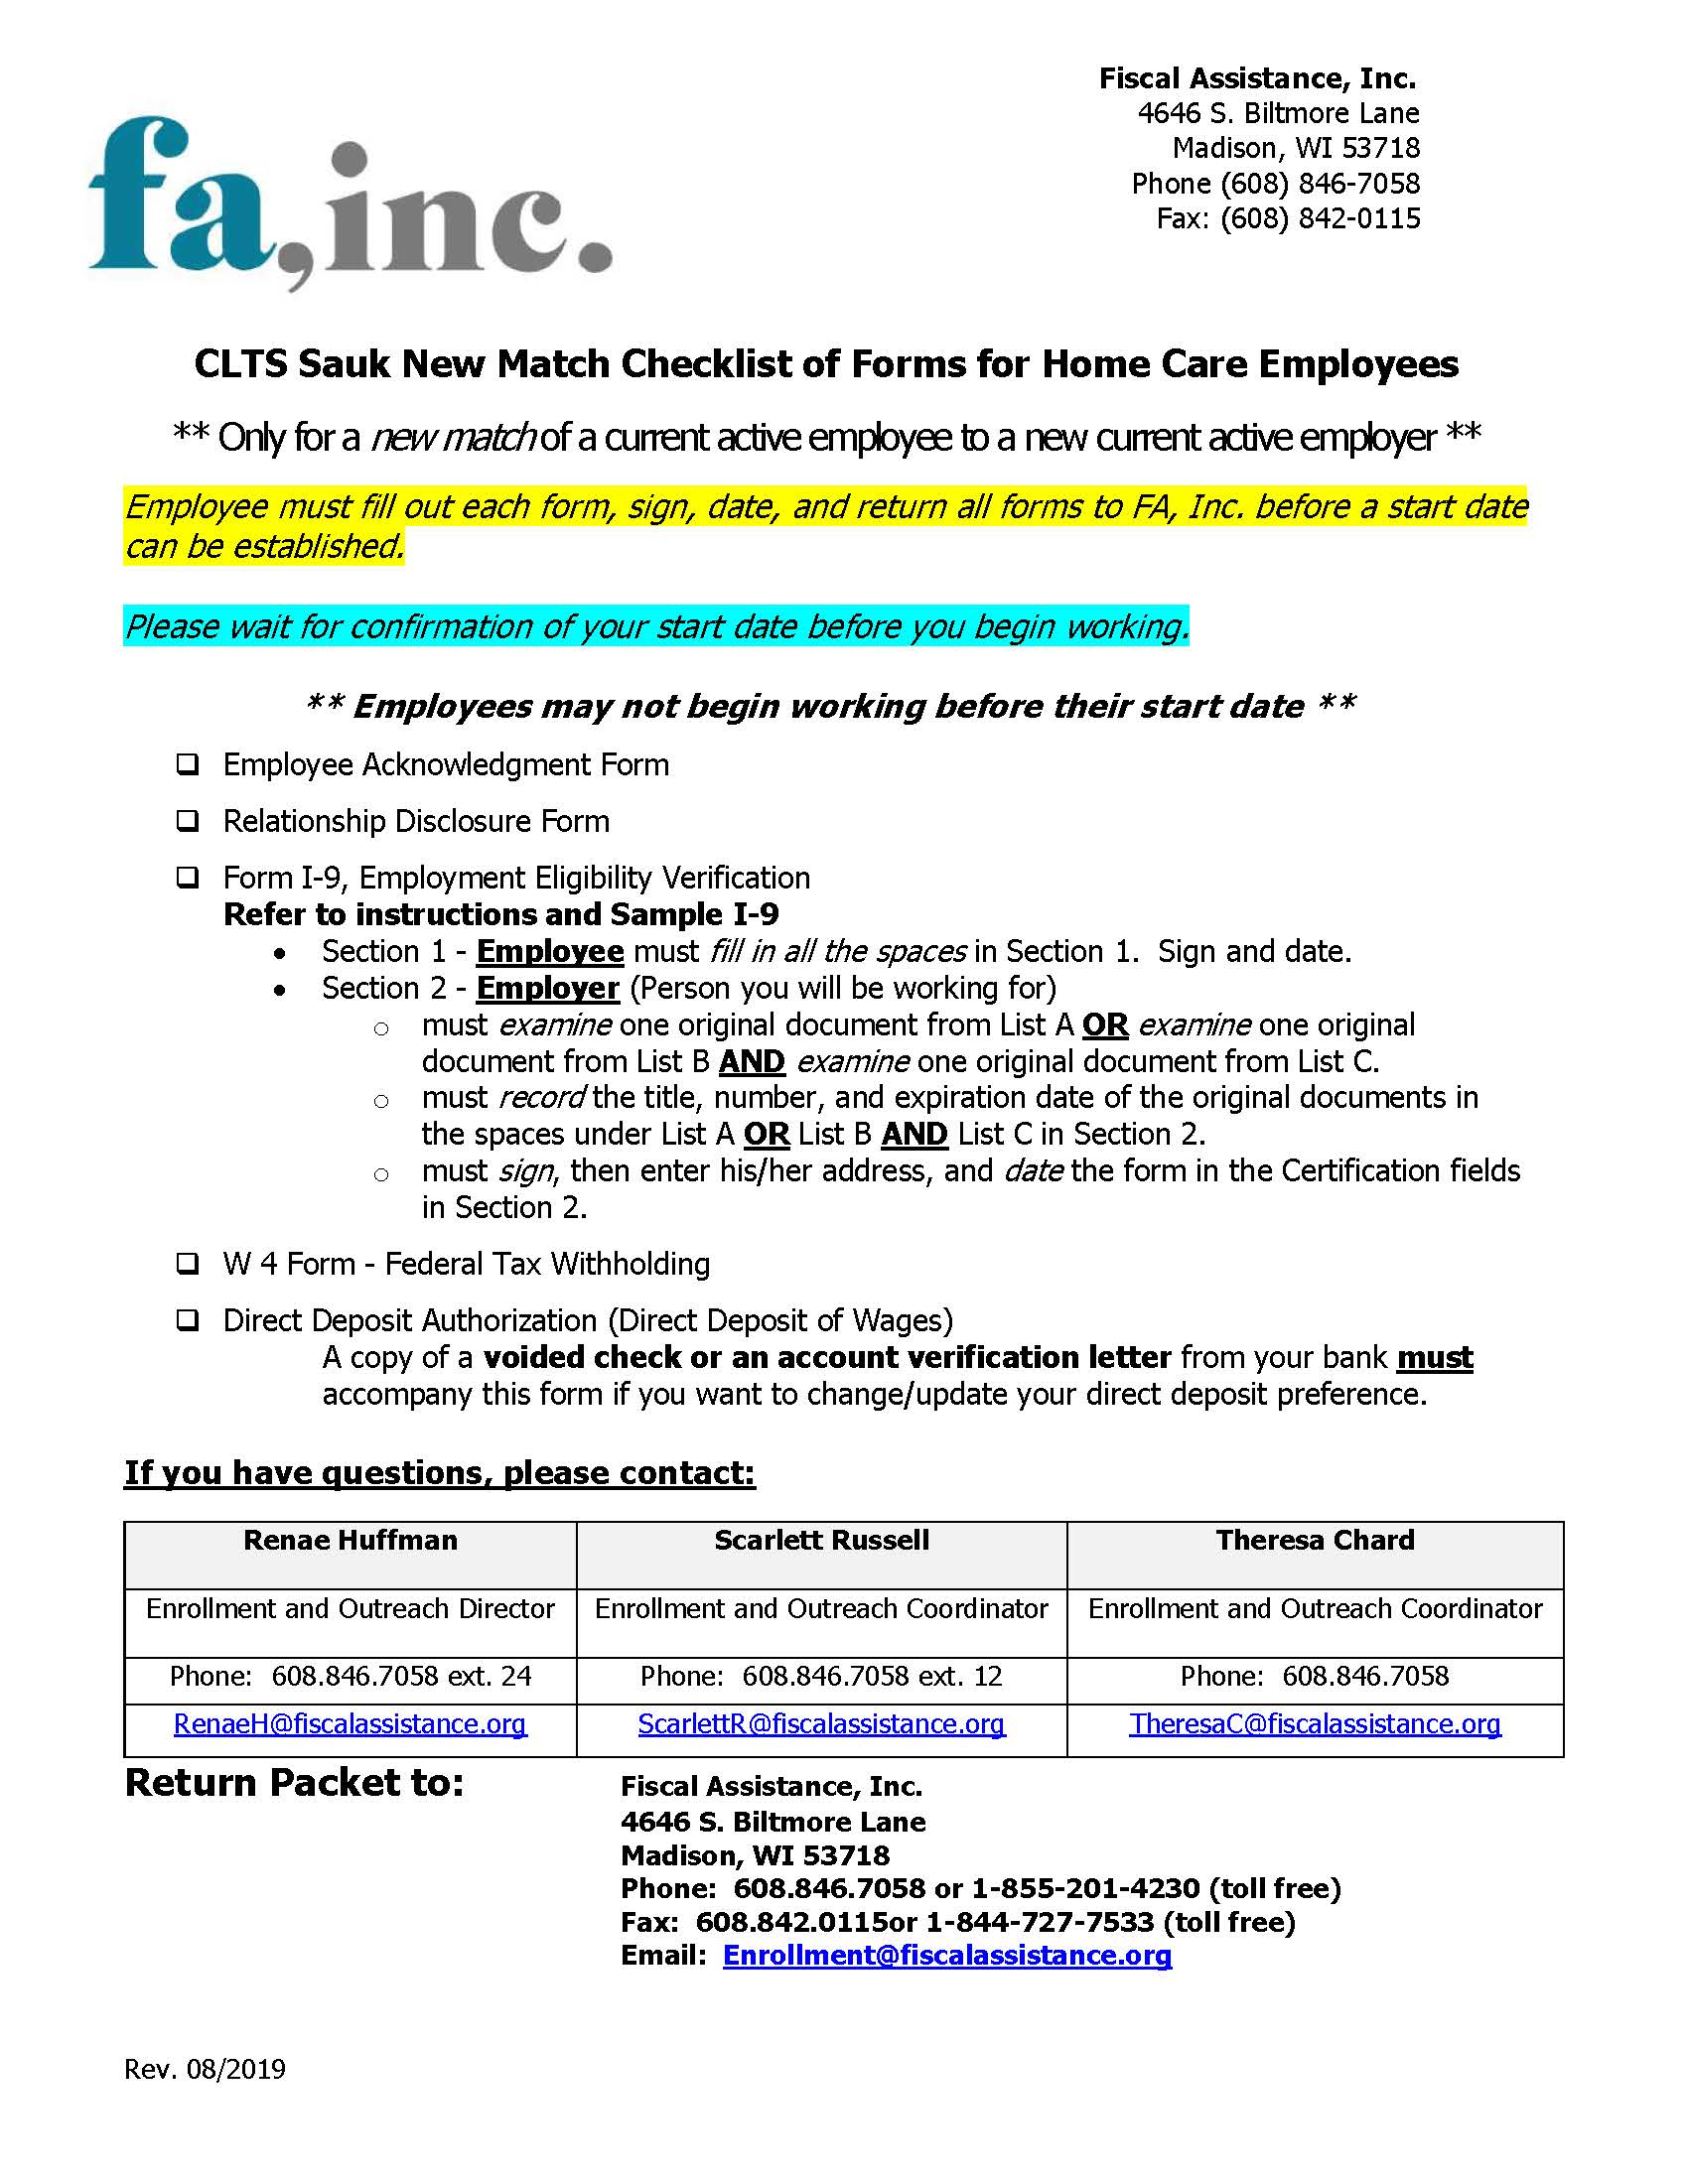 Employee New Match Packet - CLTS Sauk